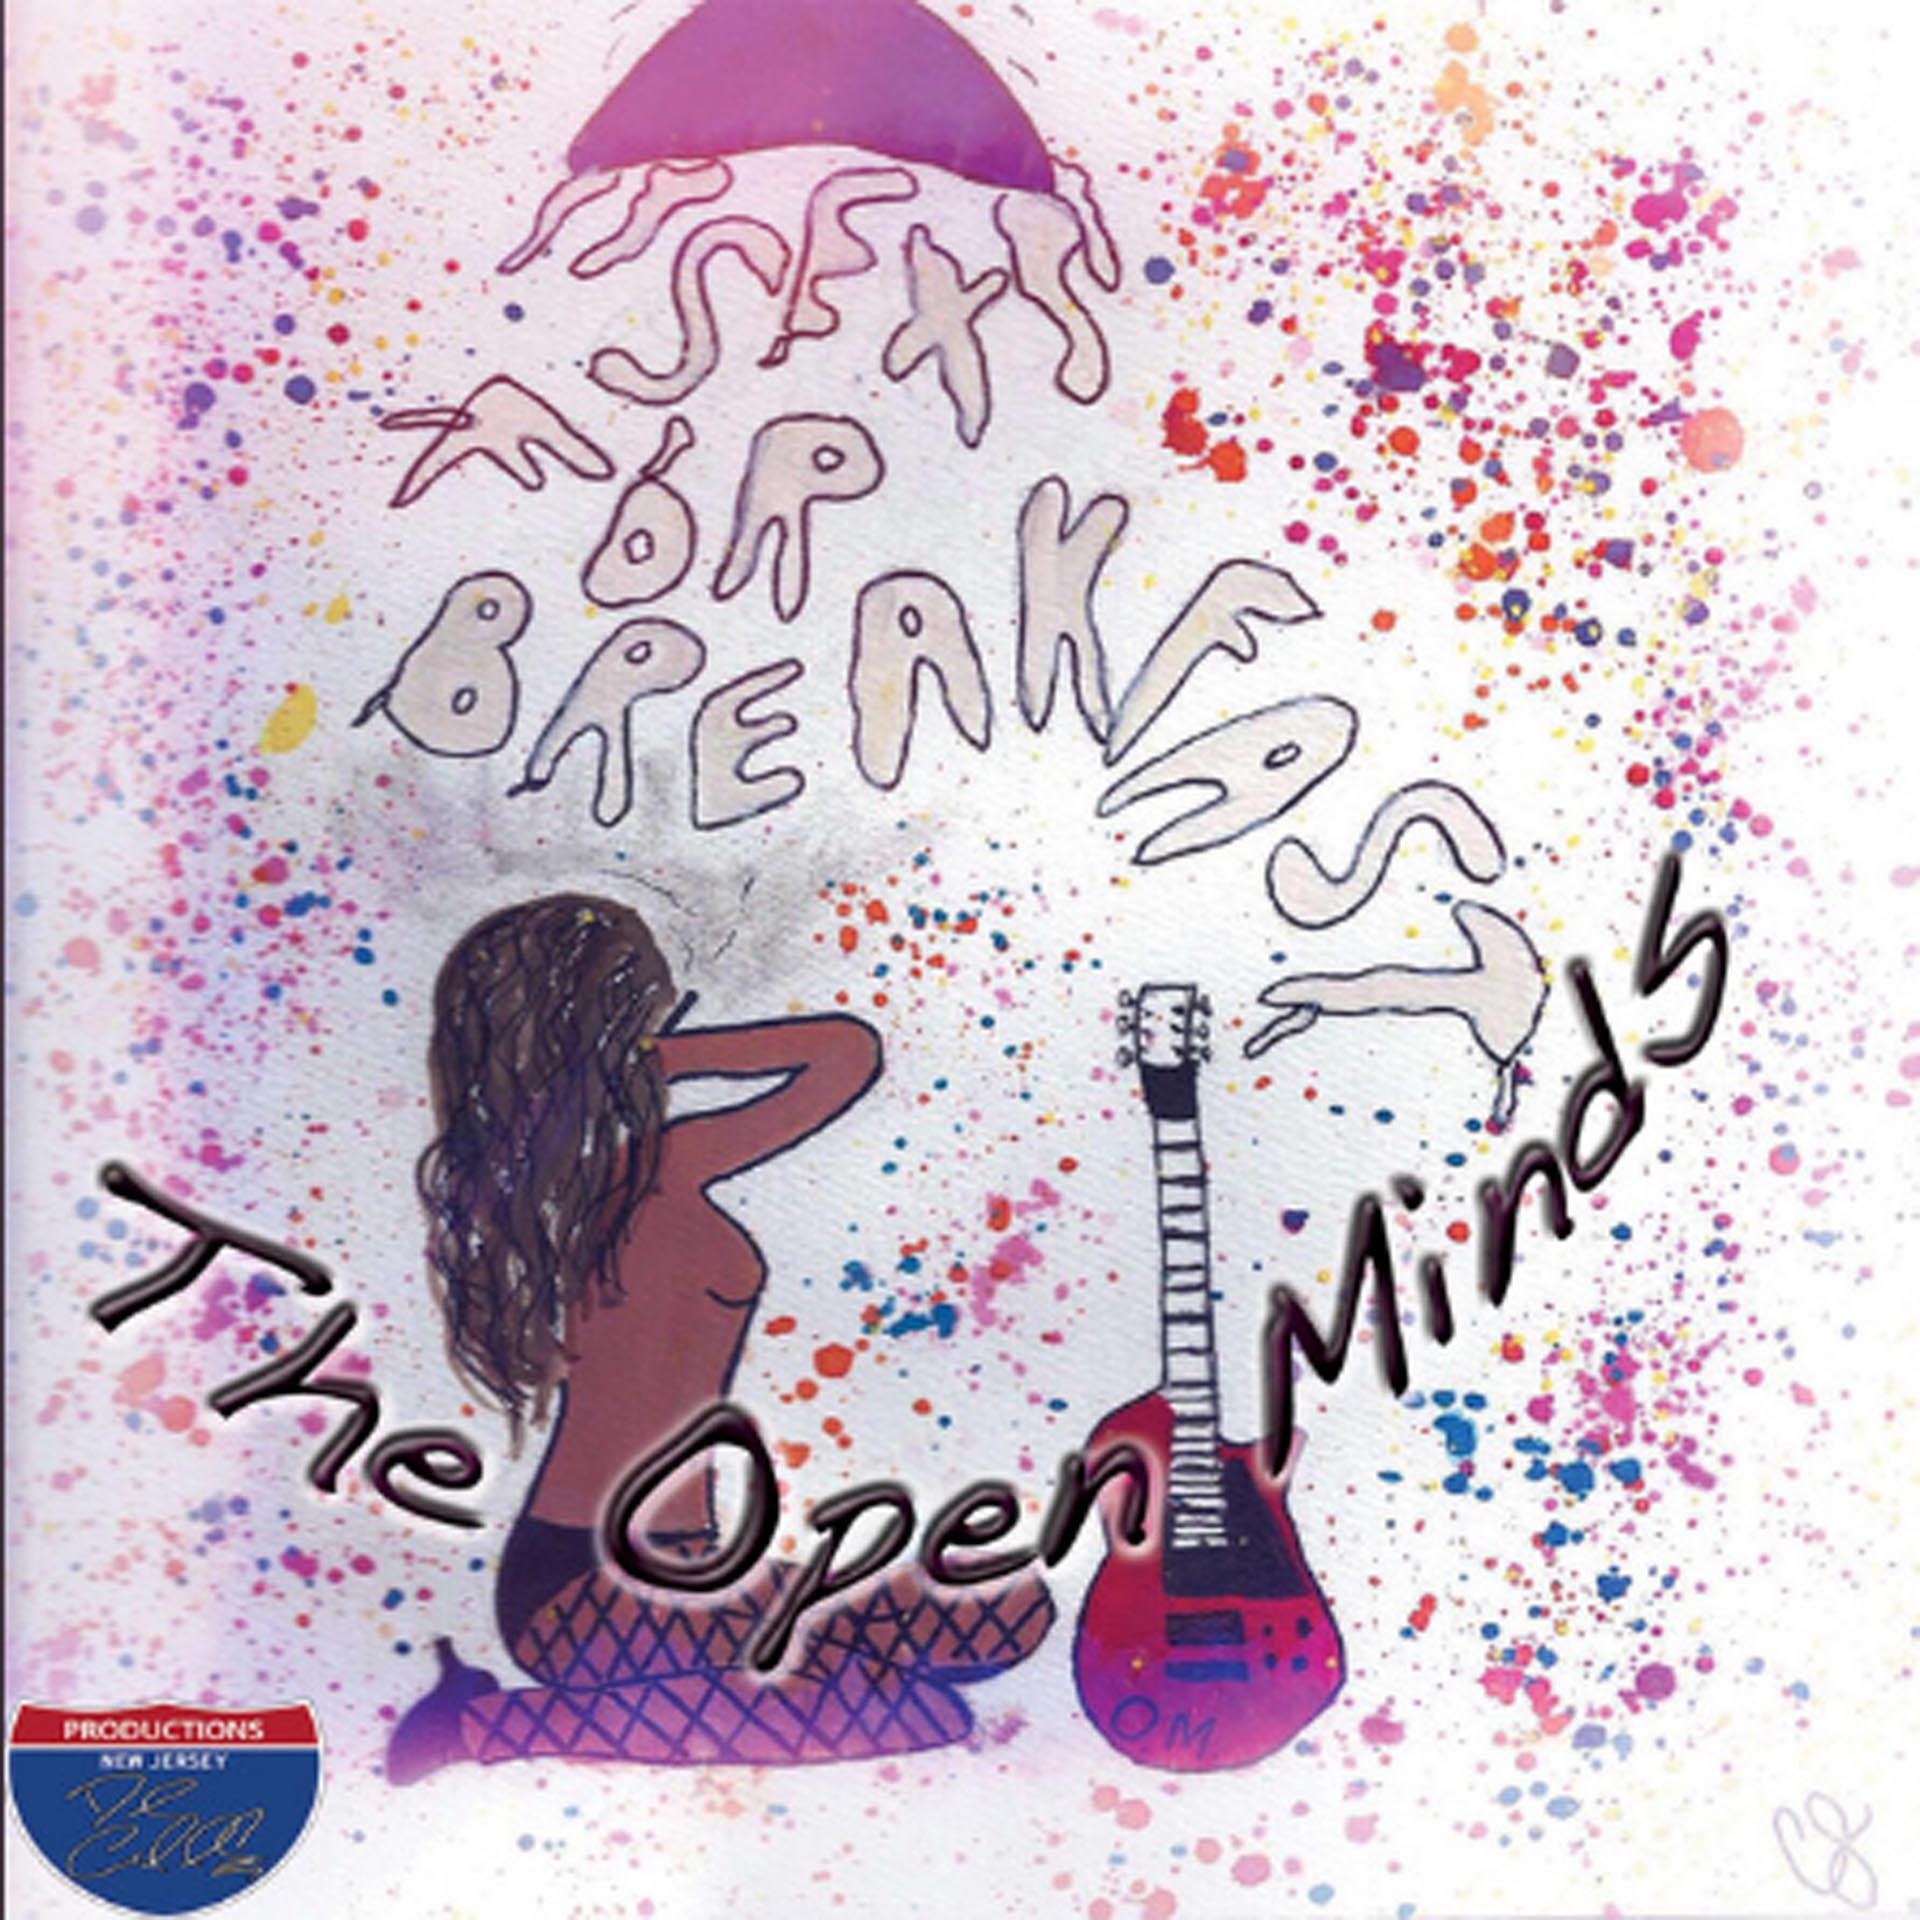 The Open Minds album cover.jpg